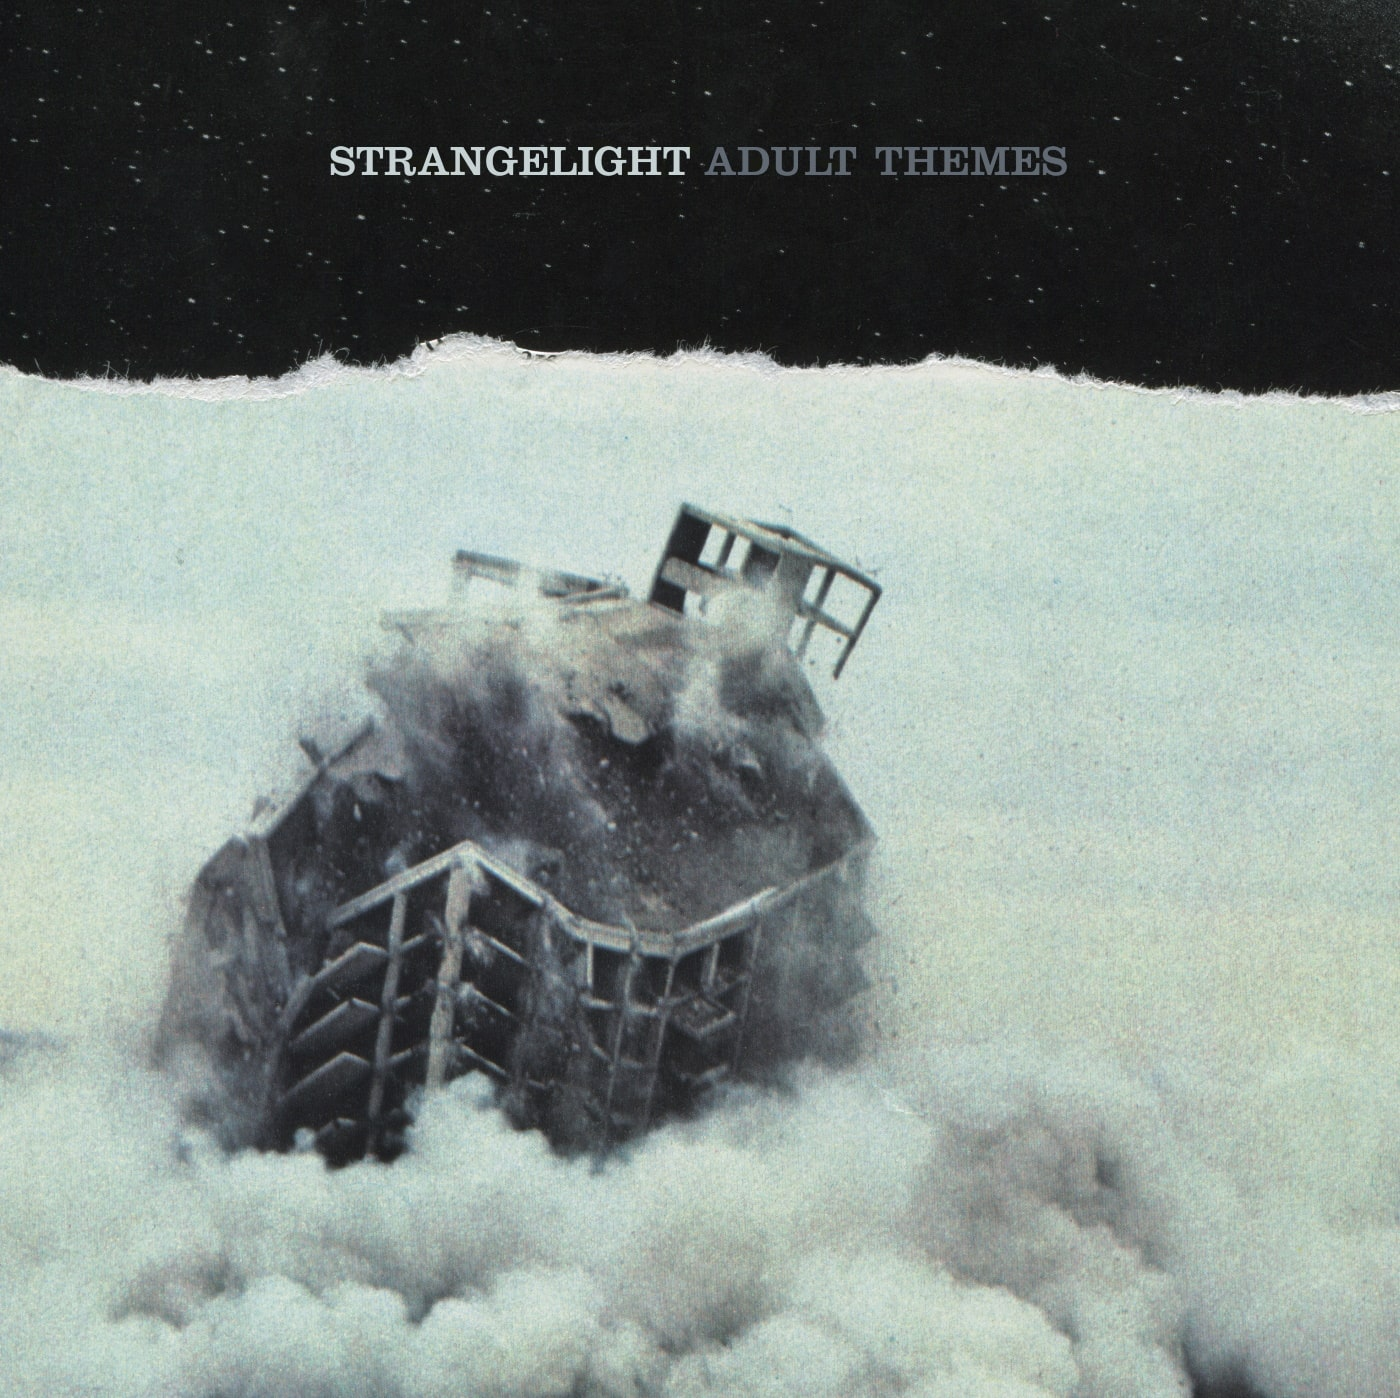 STRANGELIGHT cover